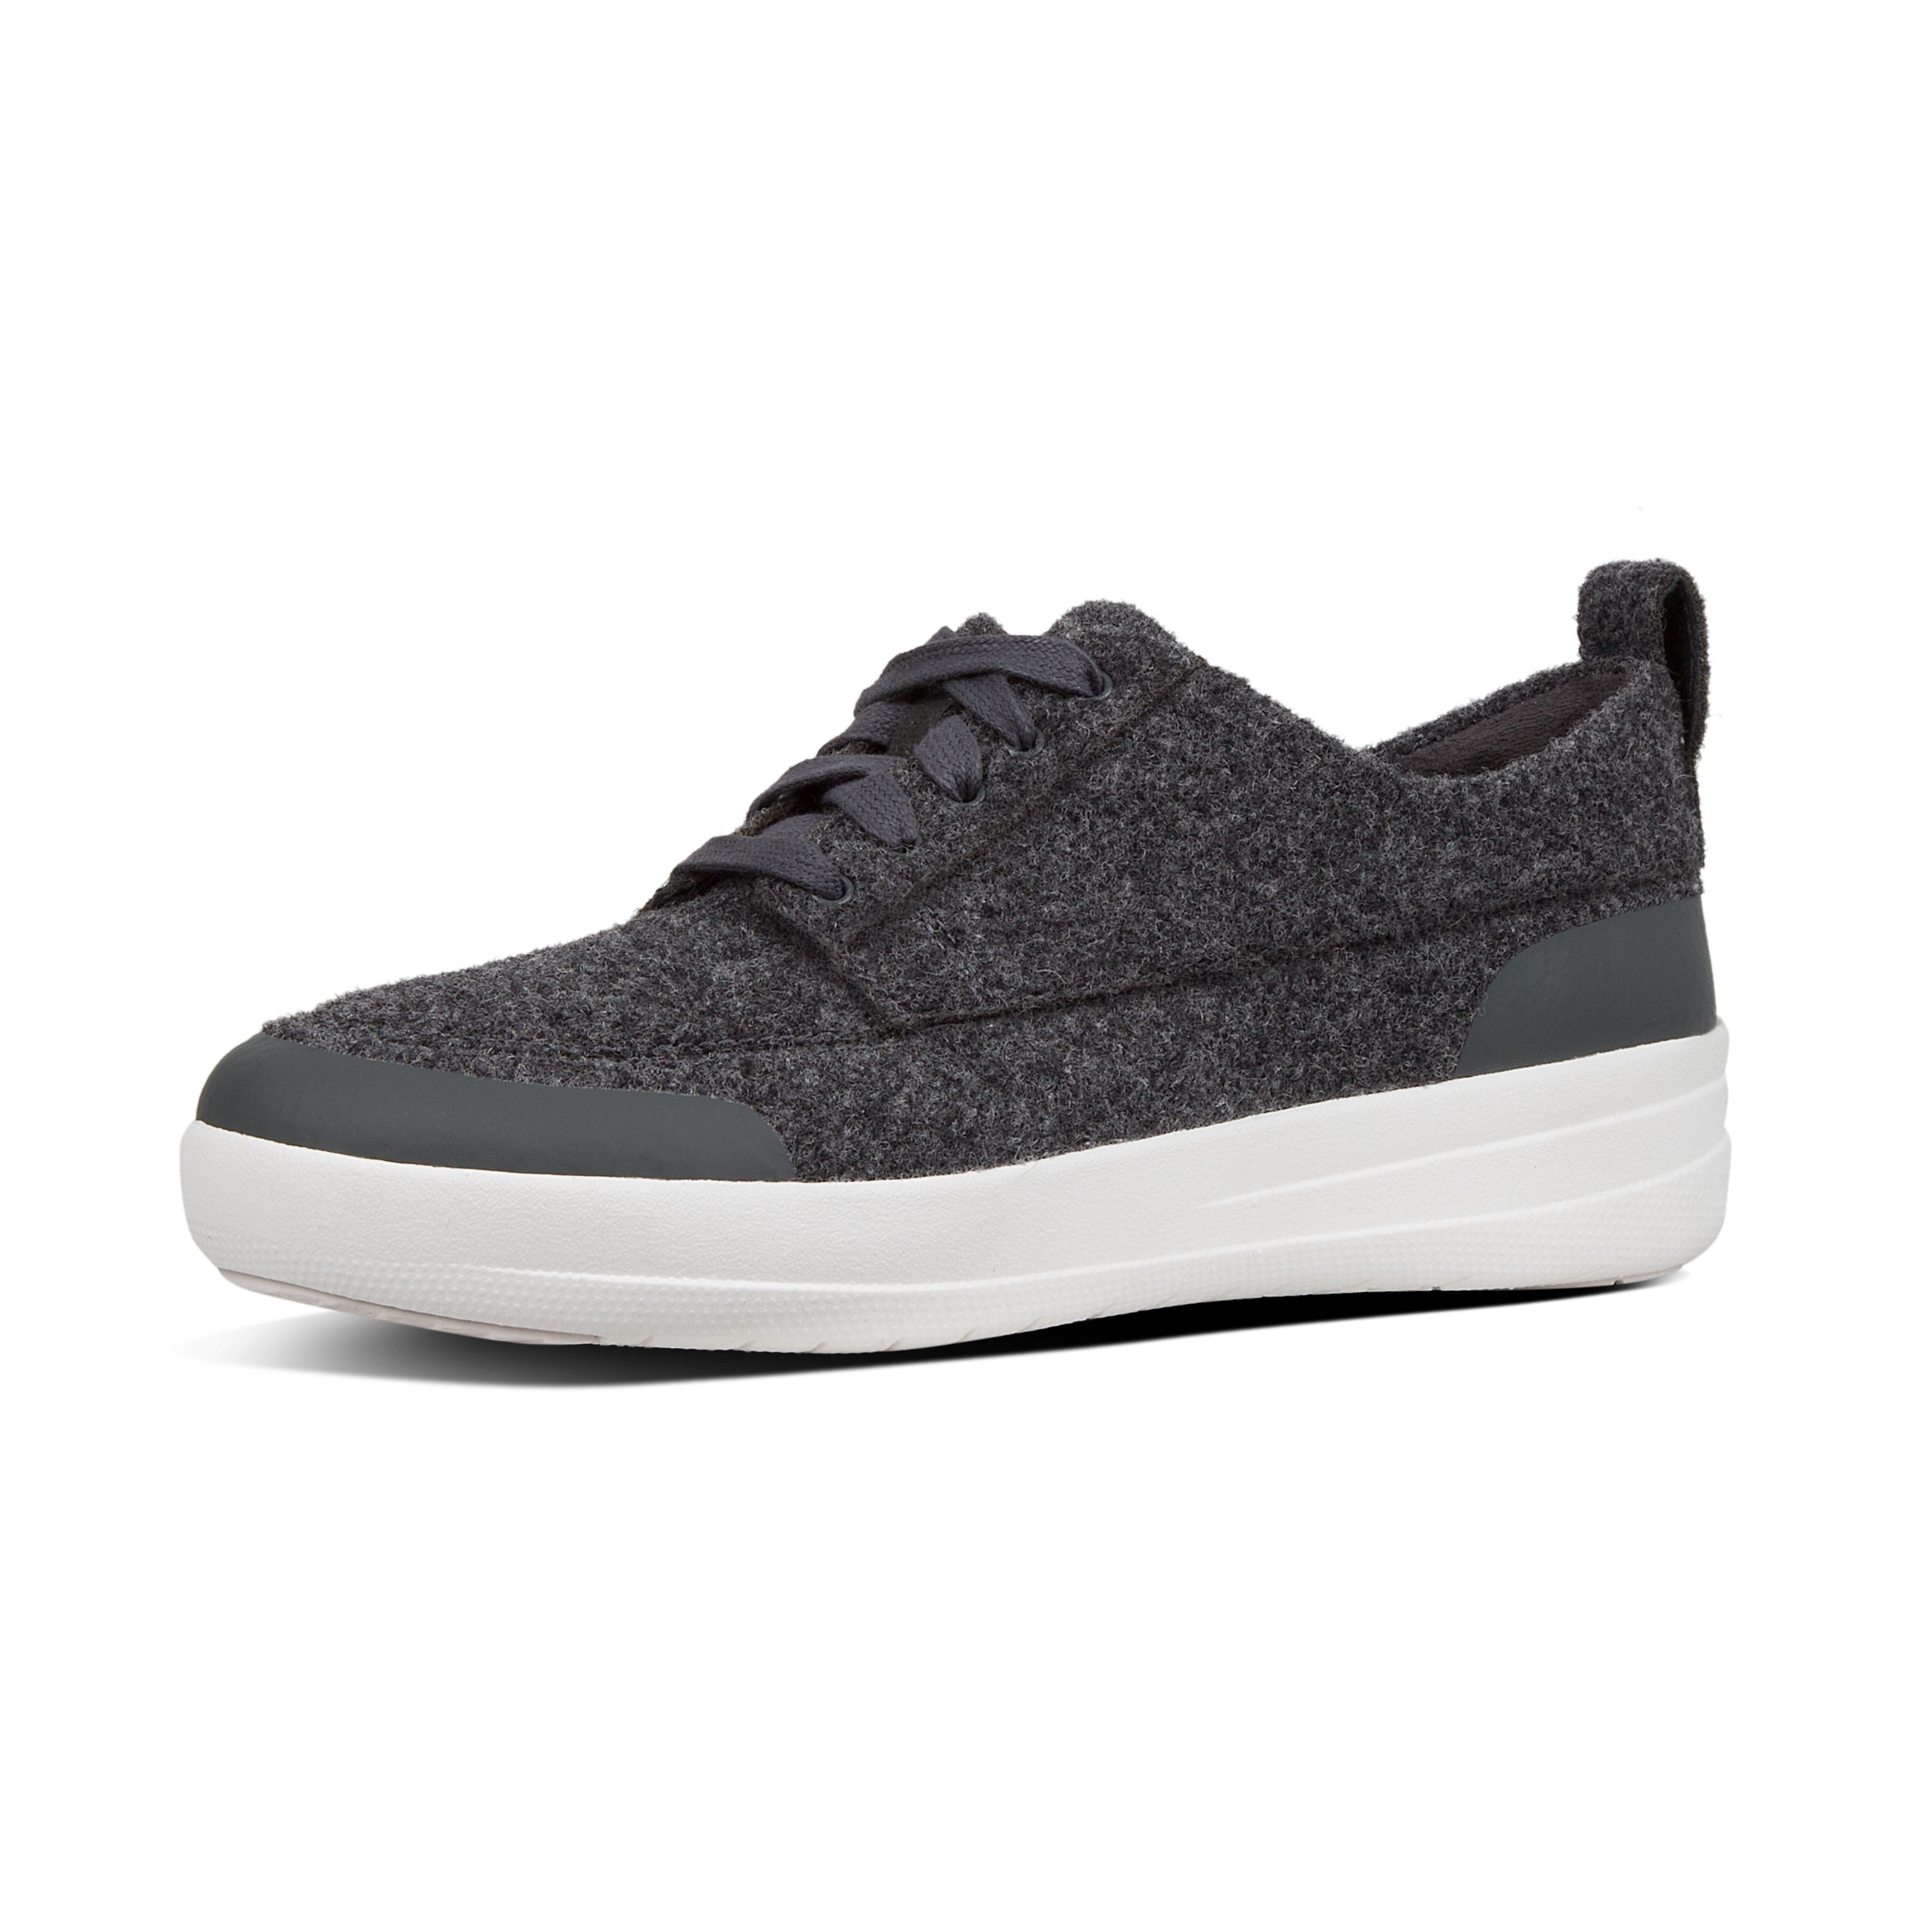 Live in sneakers? Then make sure you're equipped with a pair of these for when it gets chillier. Crafted in soft, warm woollen felt, and featuring our ultra-light, all-day cushioning Anatomicush midsole tech, they're guaranteed to keep feet snug (and effortlessly stylish).